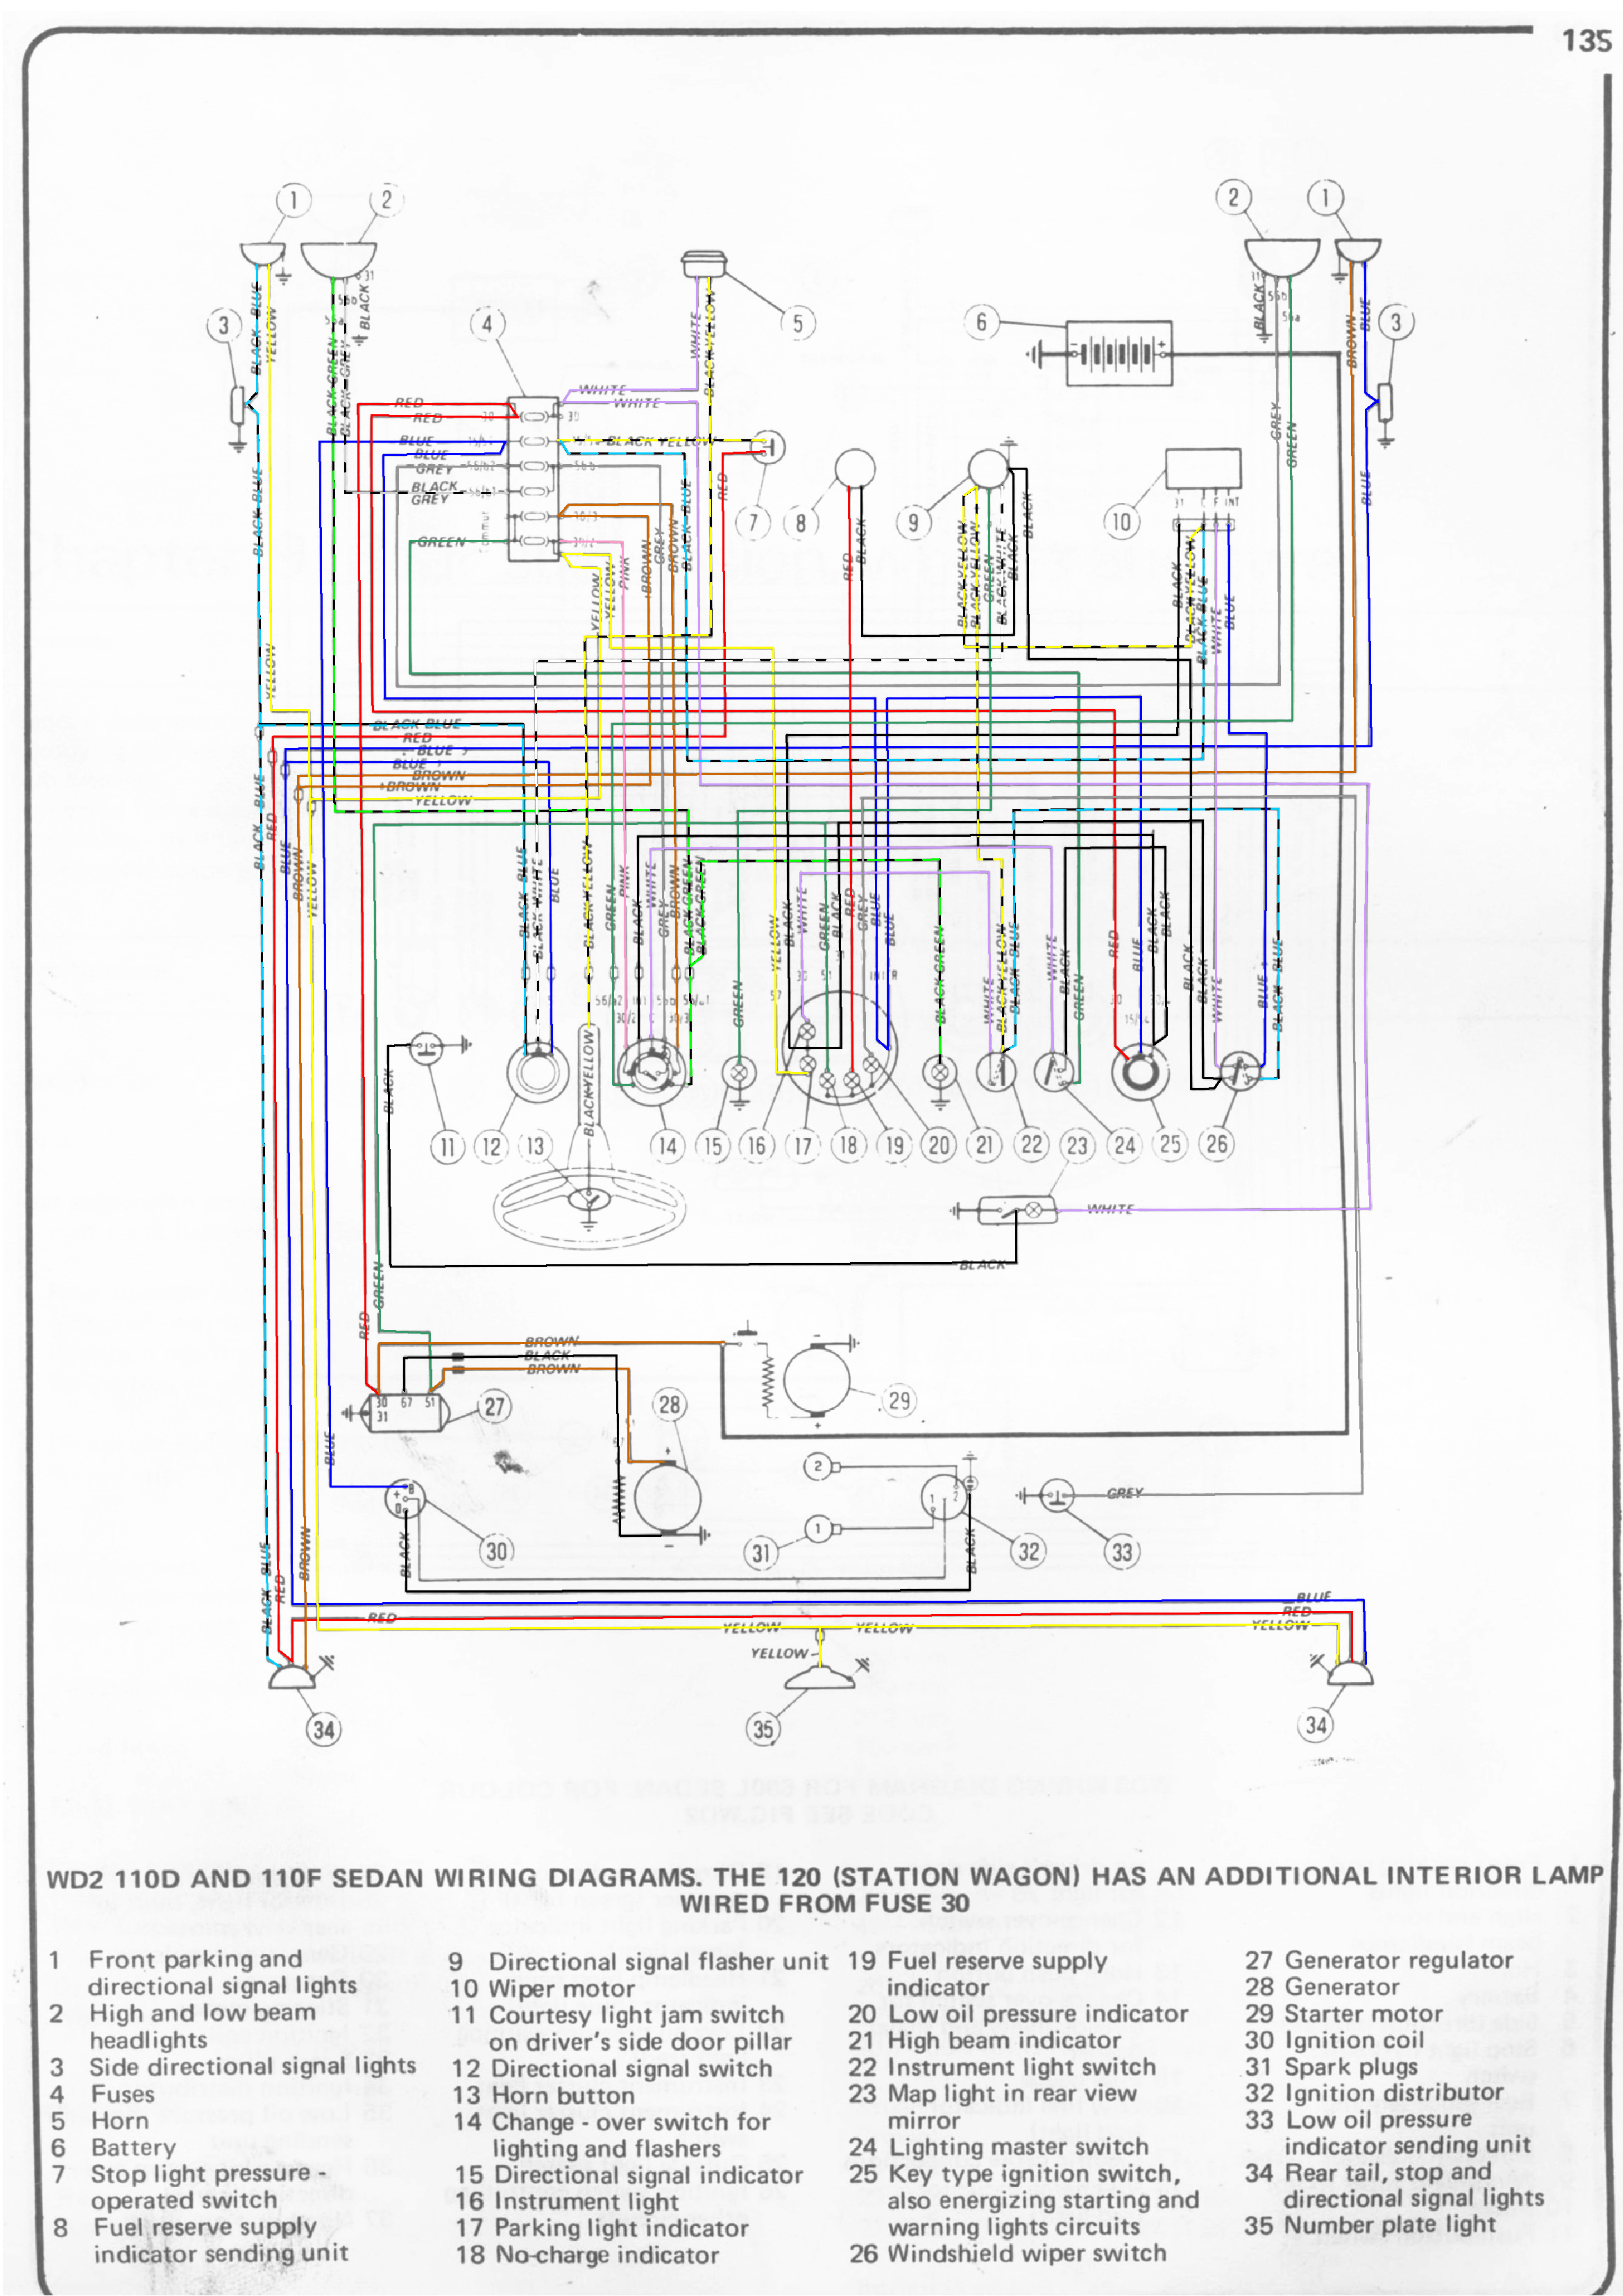 small resolution of fiat wiring diagrams schematic wiring diagramsfiat 500 wiring diagram wiring diagram third level minute mount 2